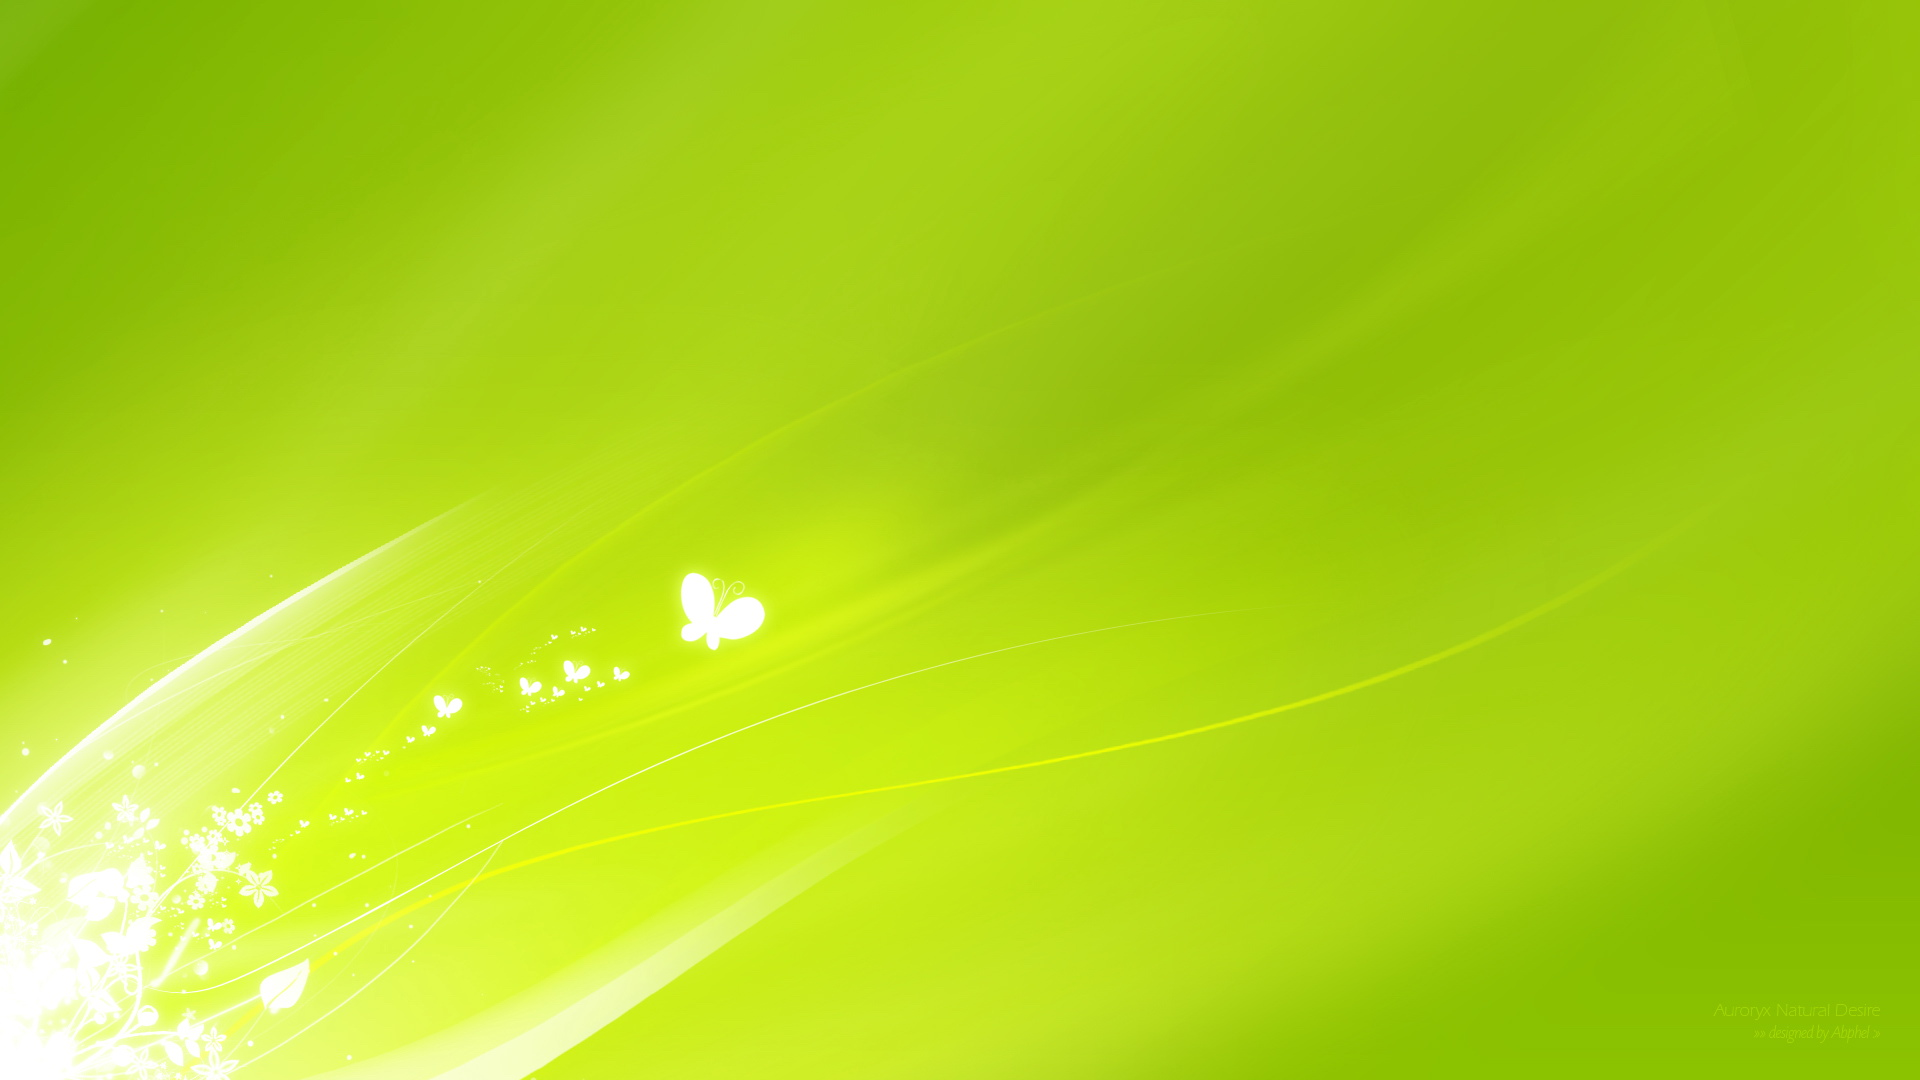 Light Green Wallpaper